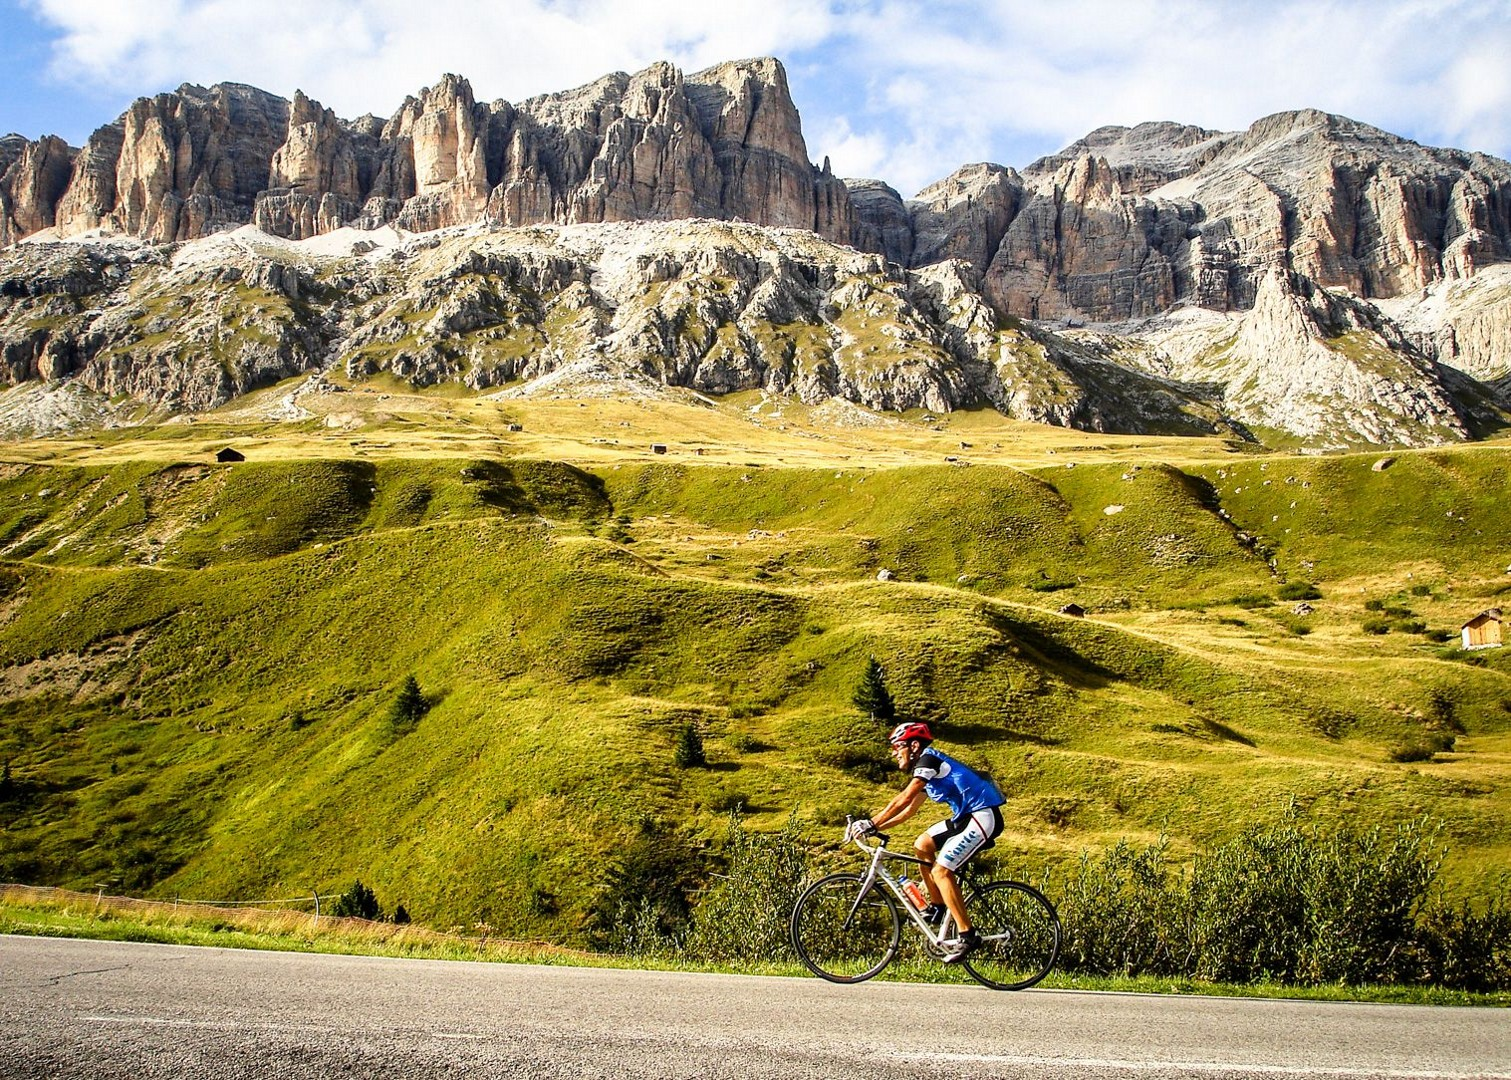 Droad-cycling-cols-of-italy-switzerland-and-france.jpg - Italy - Italian Dolomites - Guided Road Cycling Holiday - Road Cycling